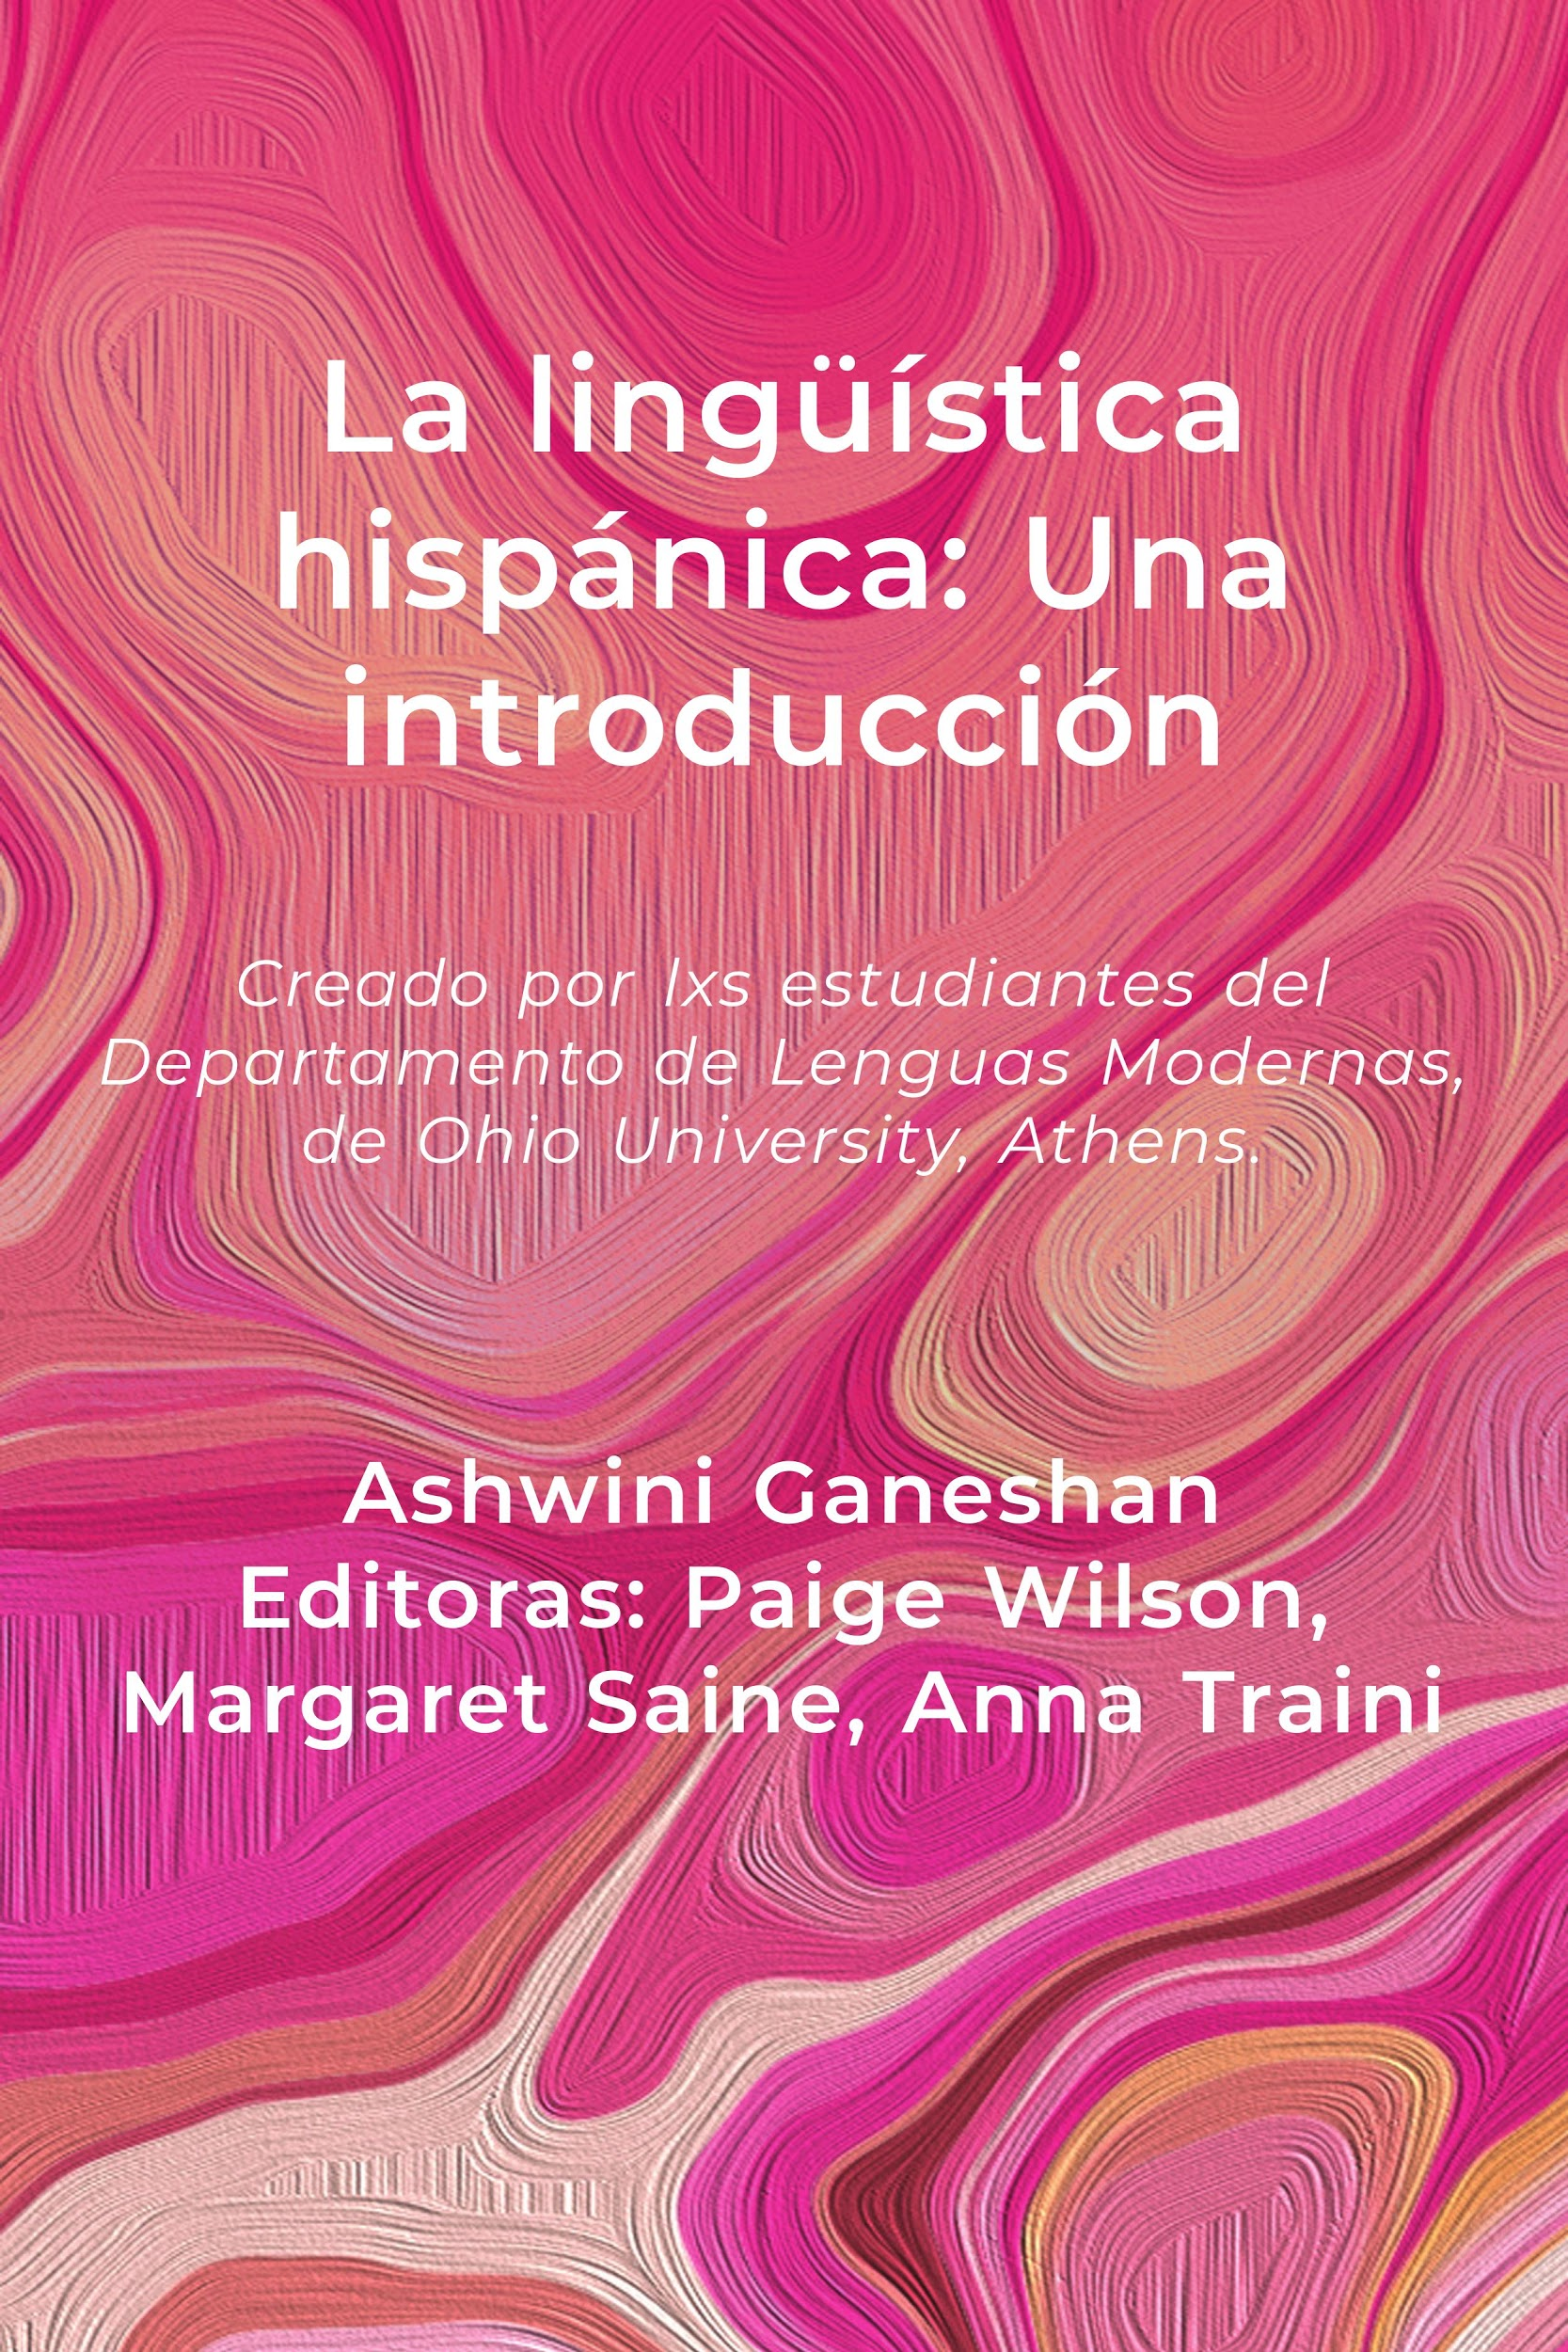 Book cover of La linguistica hispanica: una introduccion